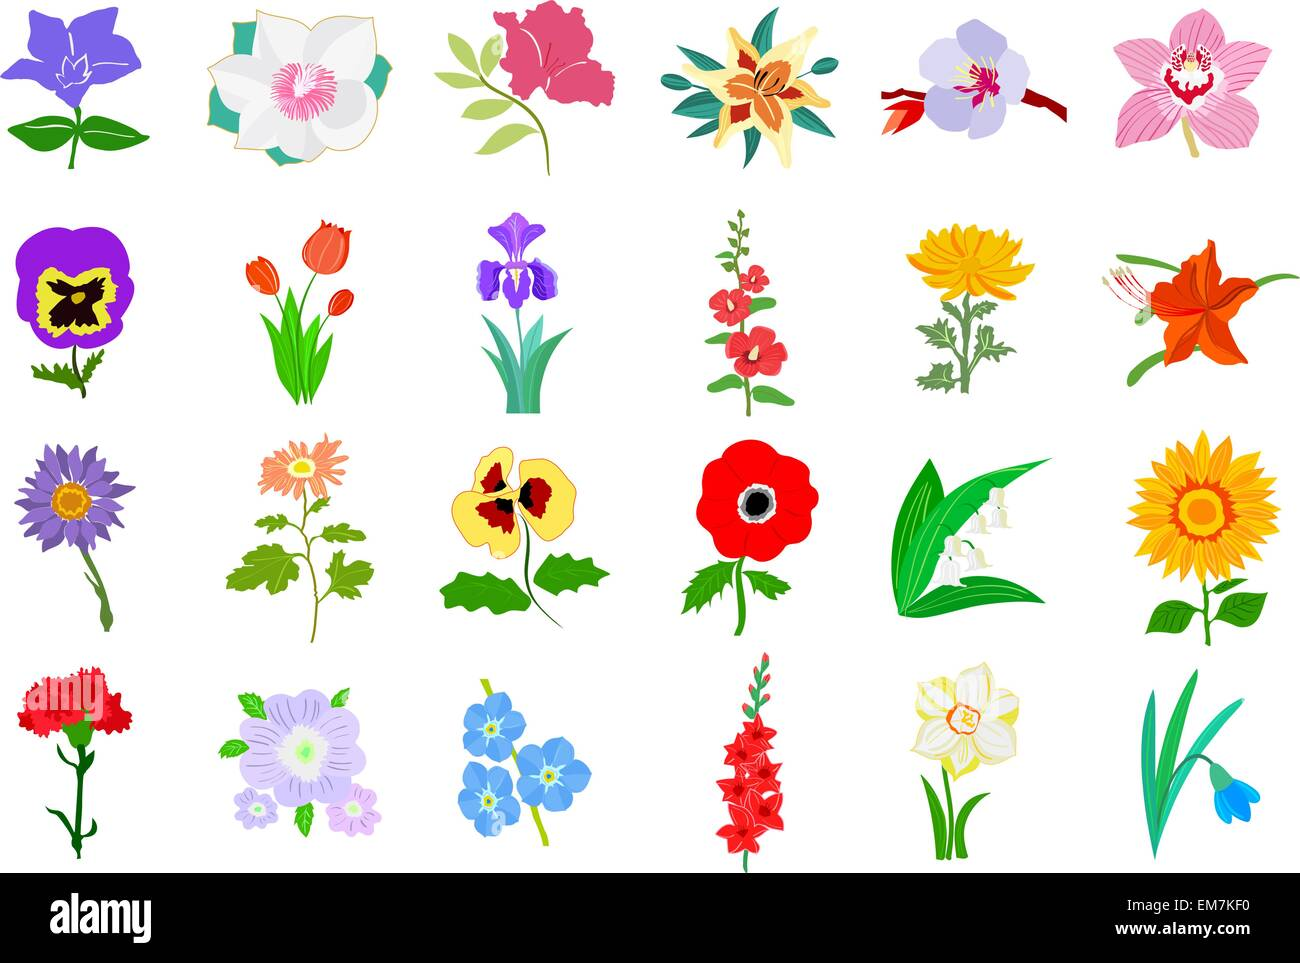 Set of colored illustration of flowers - Stock Vector